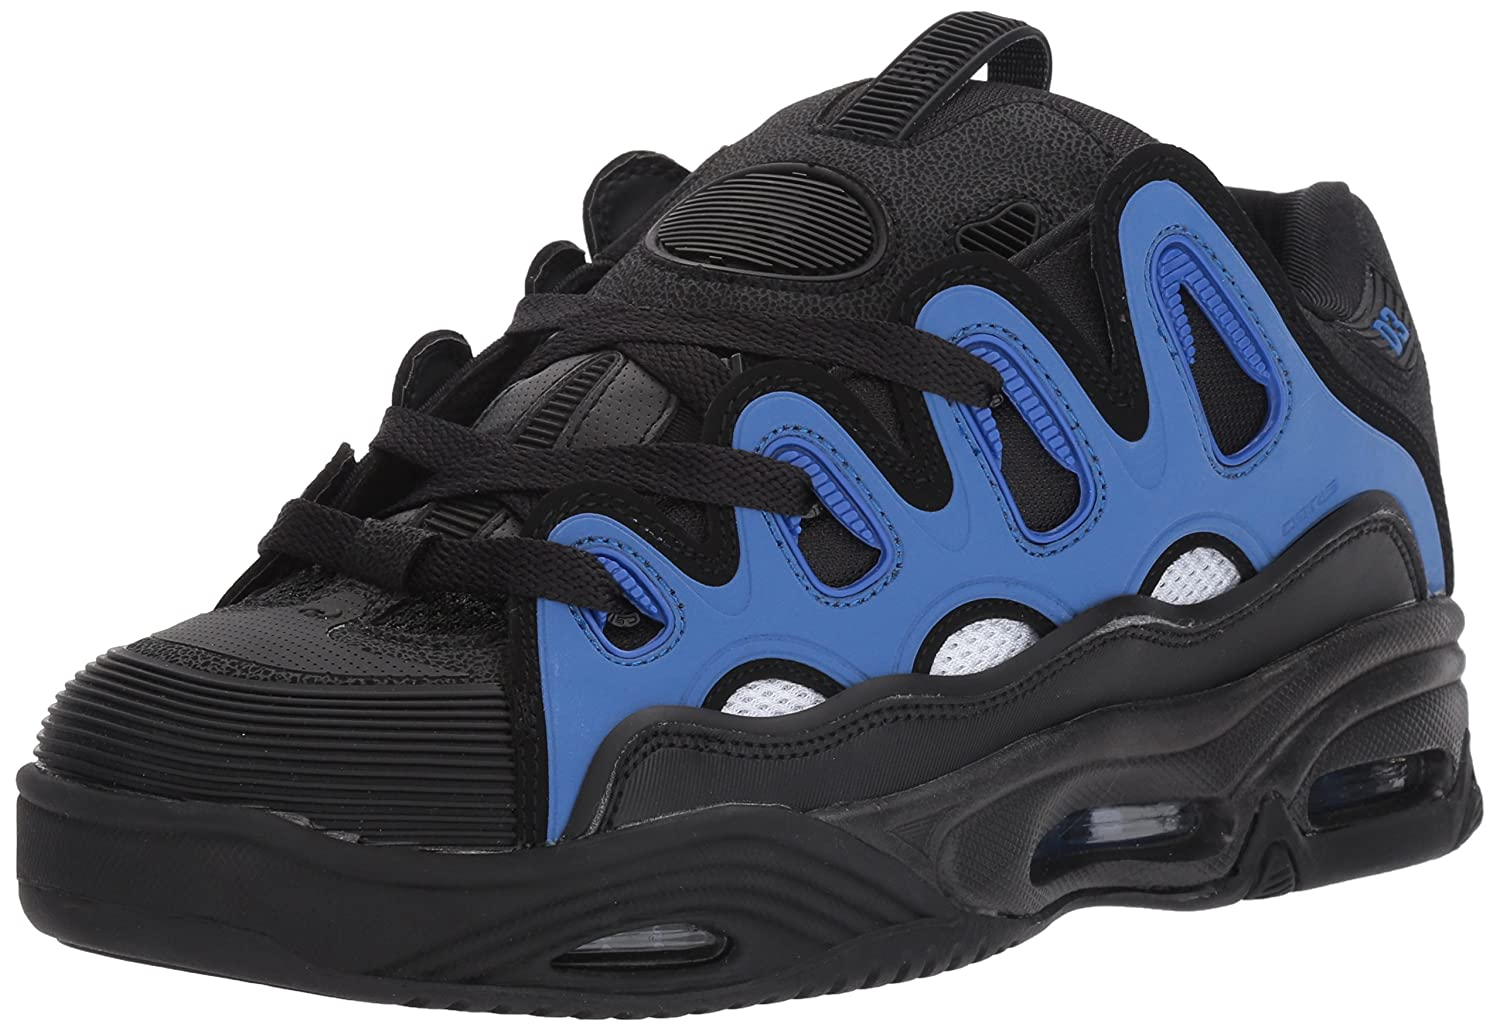 Osiris D3 2001 スケートシューズ メンズ B01HZ5UUKM 6 D(M) US Black/White/Royal